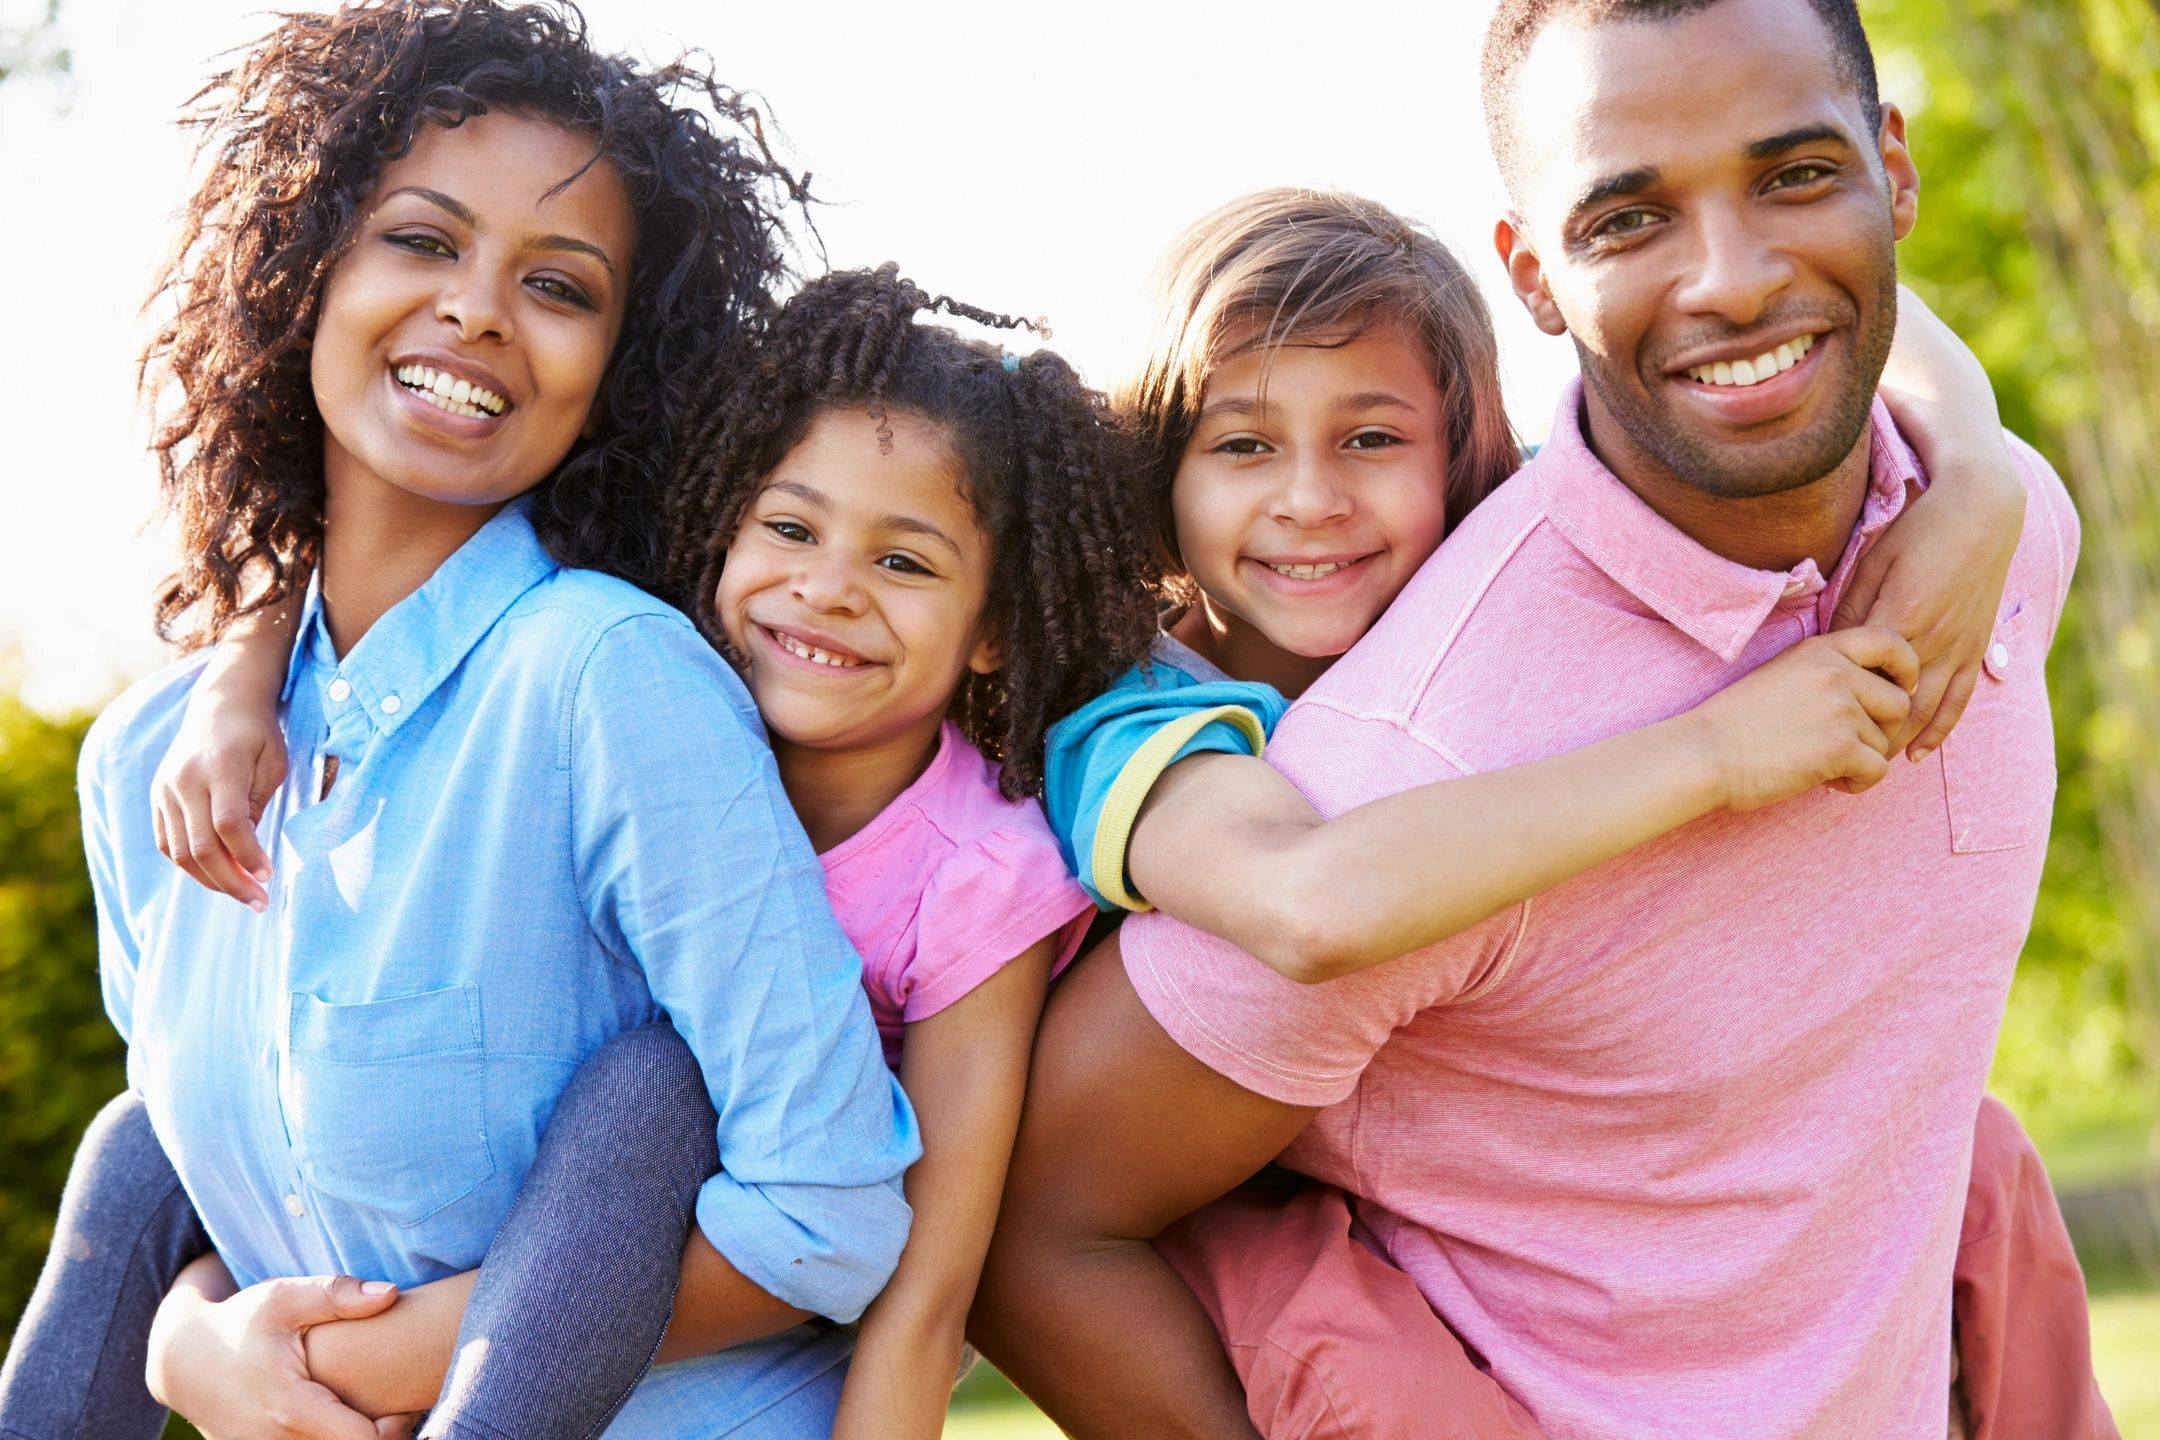 WHY BLENDED FAMILIES NEED TO PLAN AHEAD